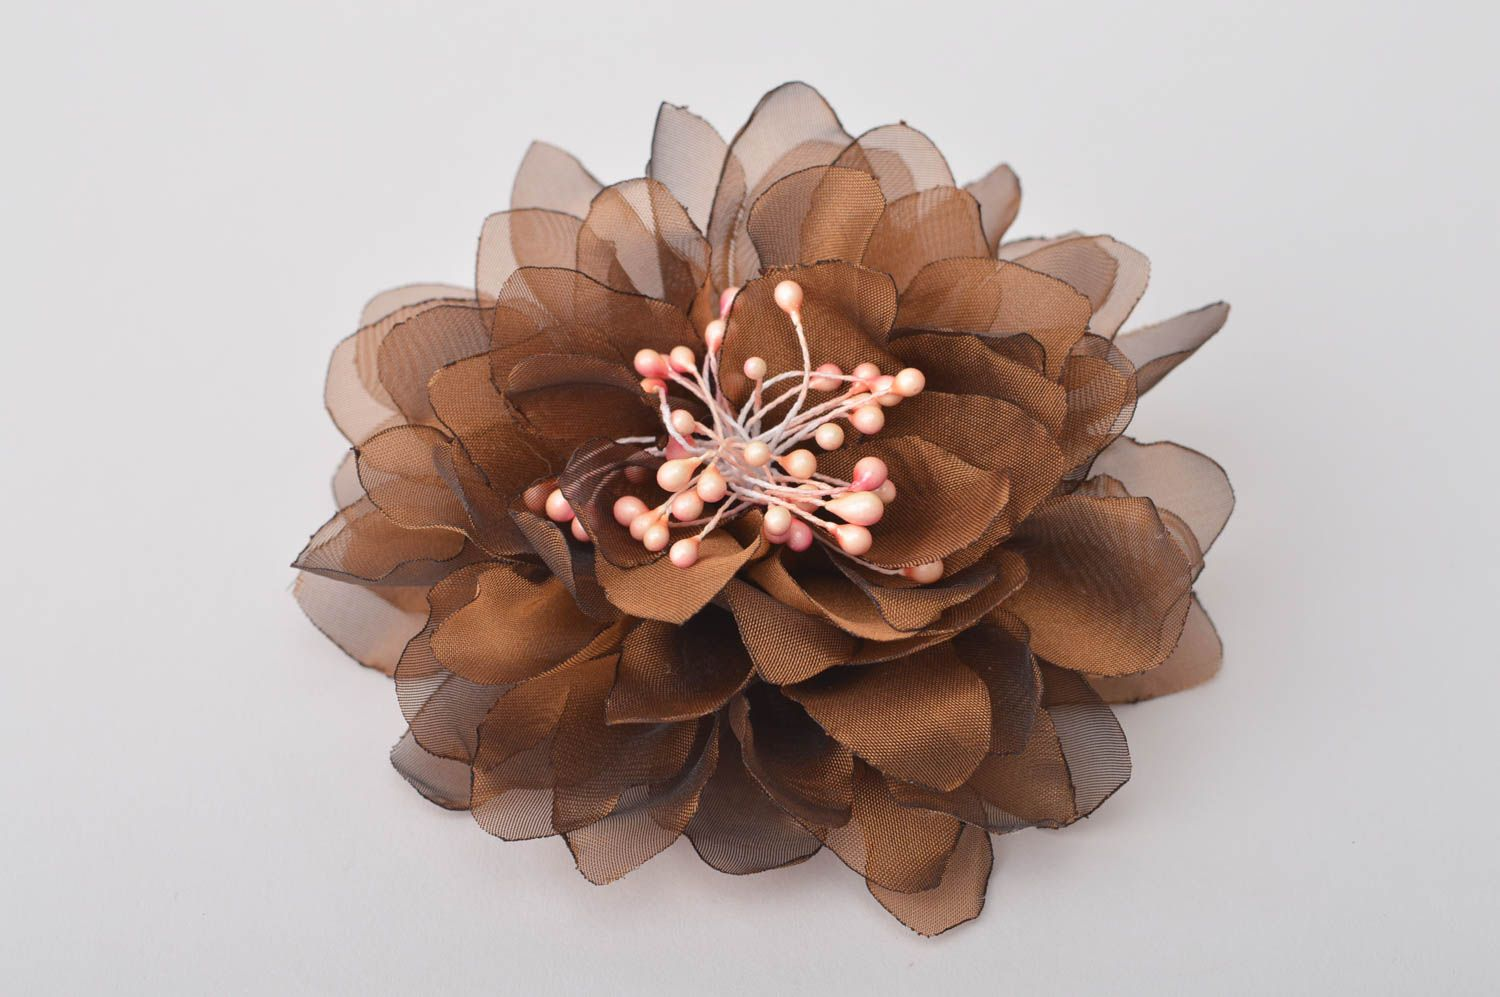 Handmade jewelry flower hair accessories flower brooch flower hair clip  photo 2